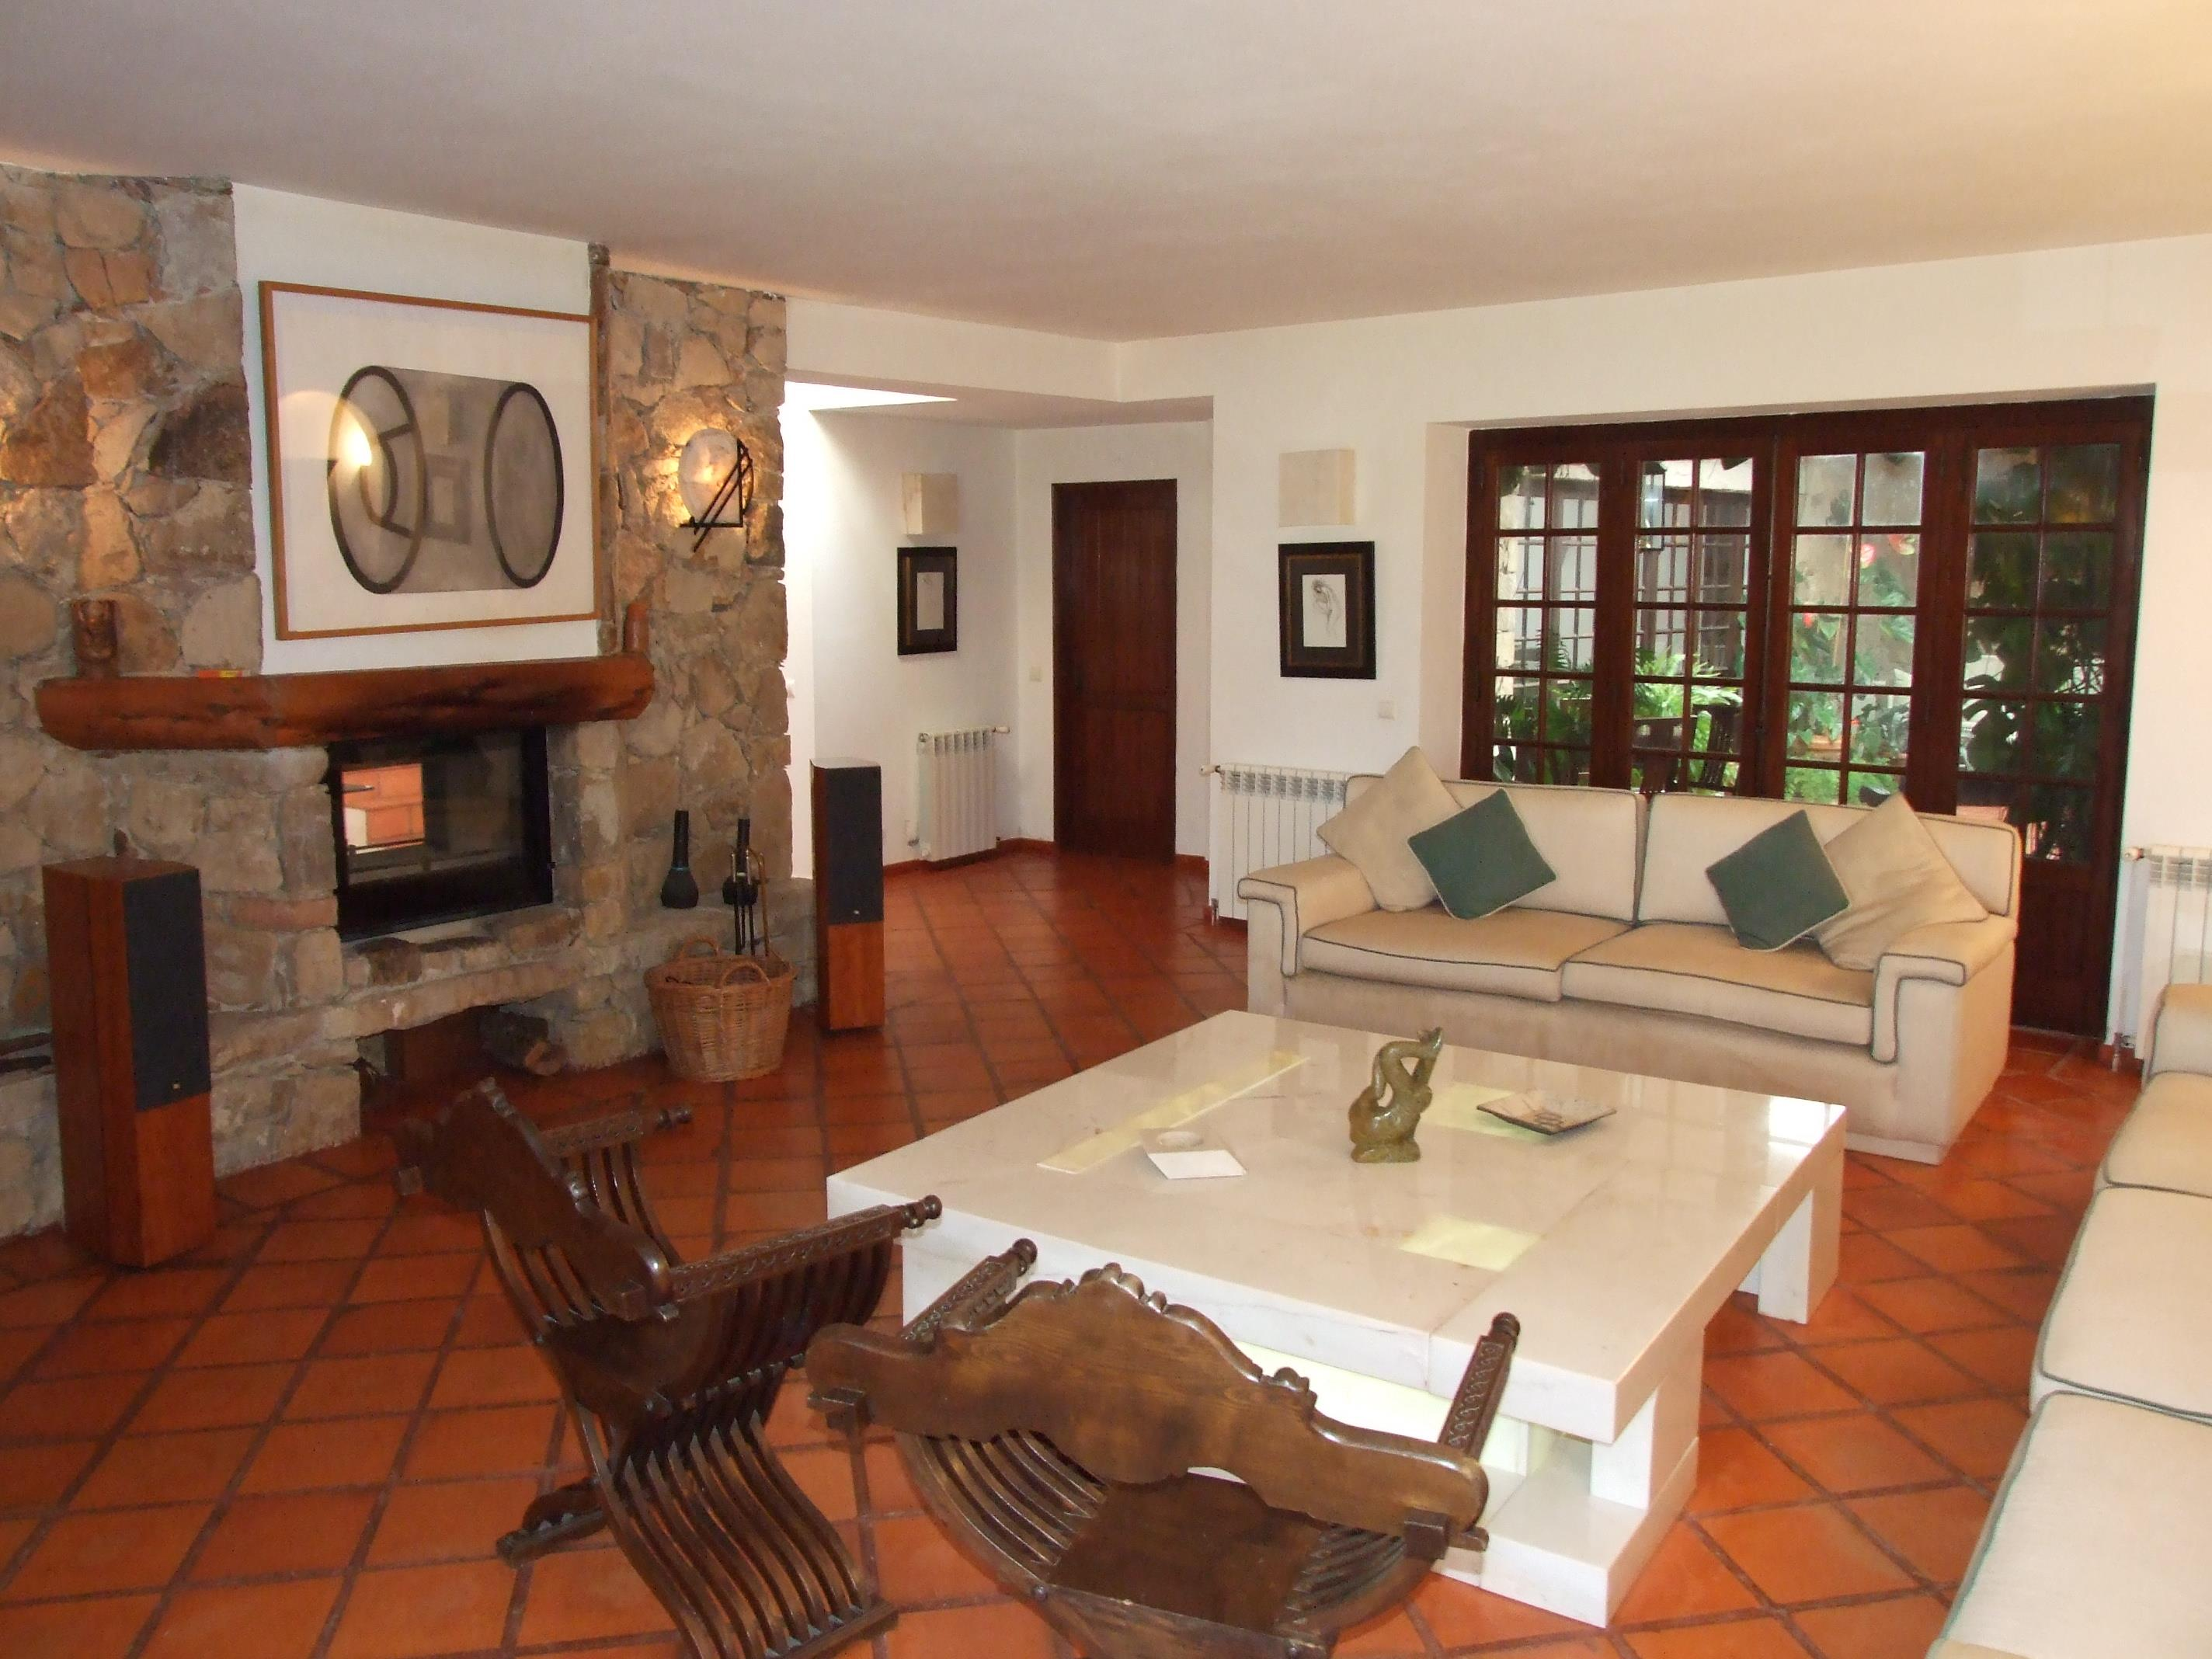 Maison unifamiliale pour l Vente à House, 4 bedrooms, for Sale Sintra, Lisbonne, Portugal